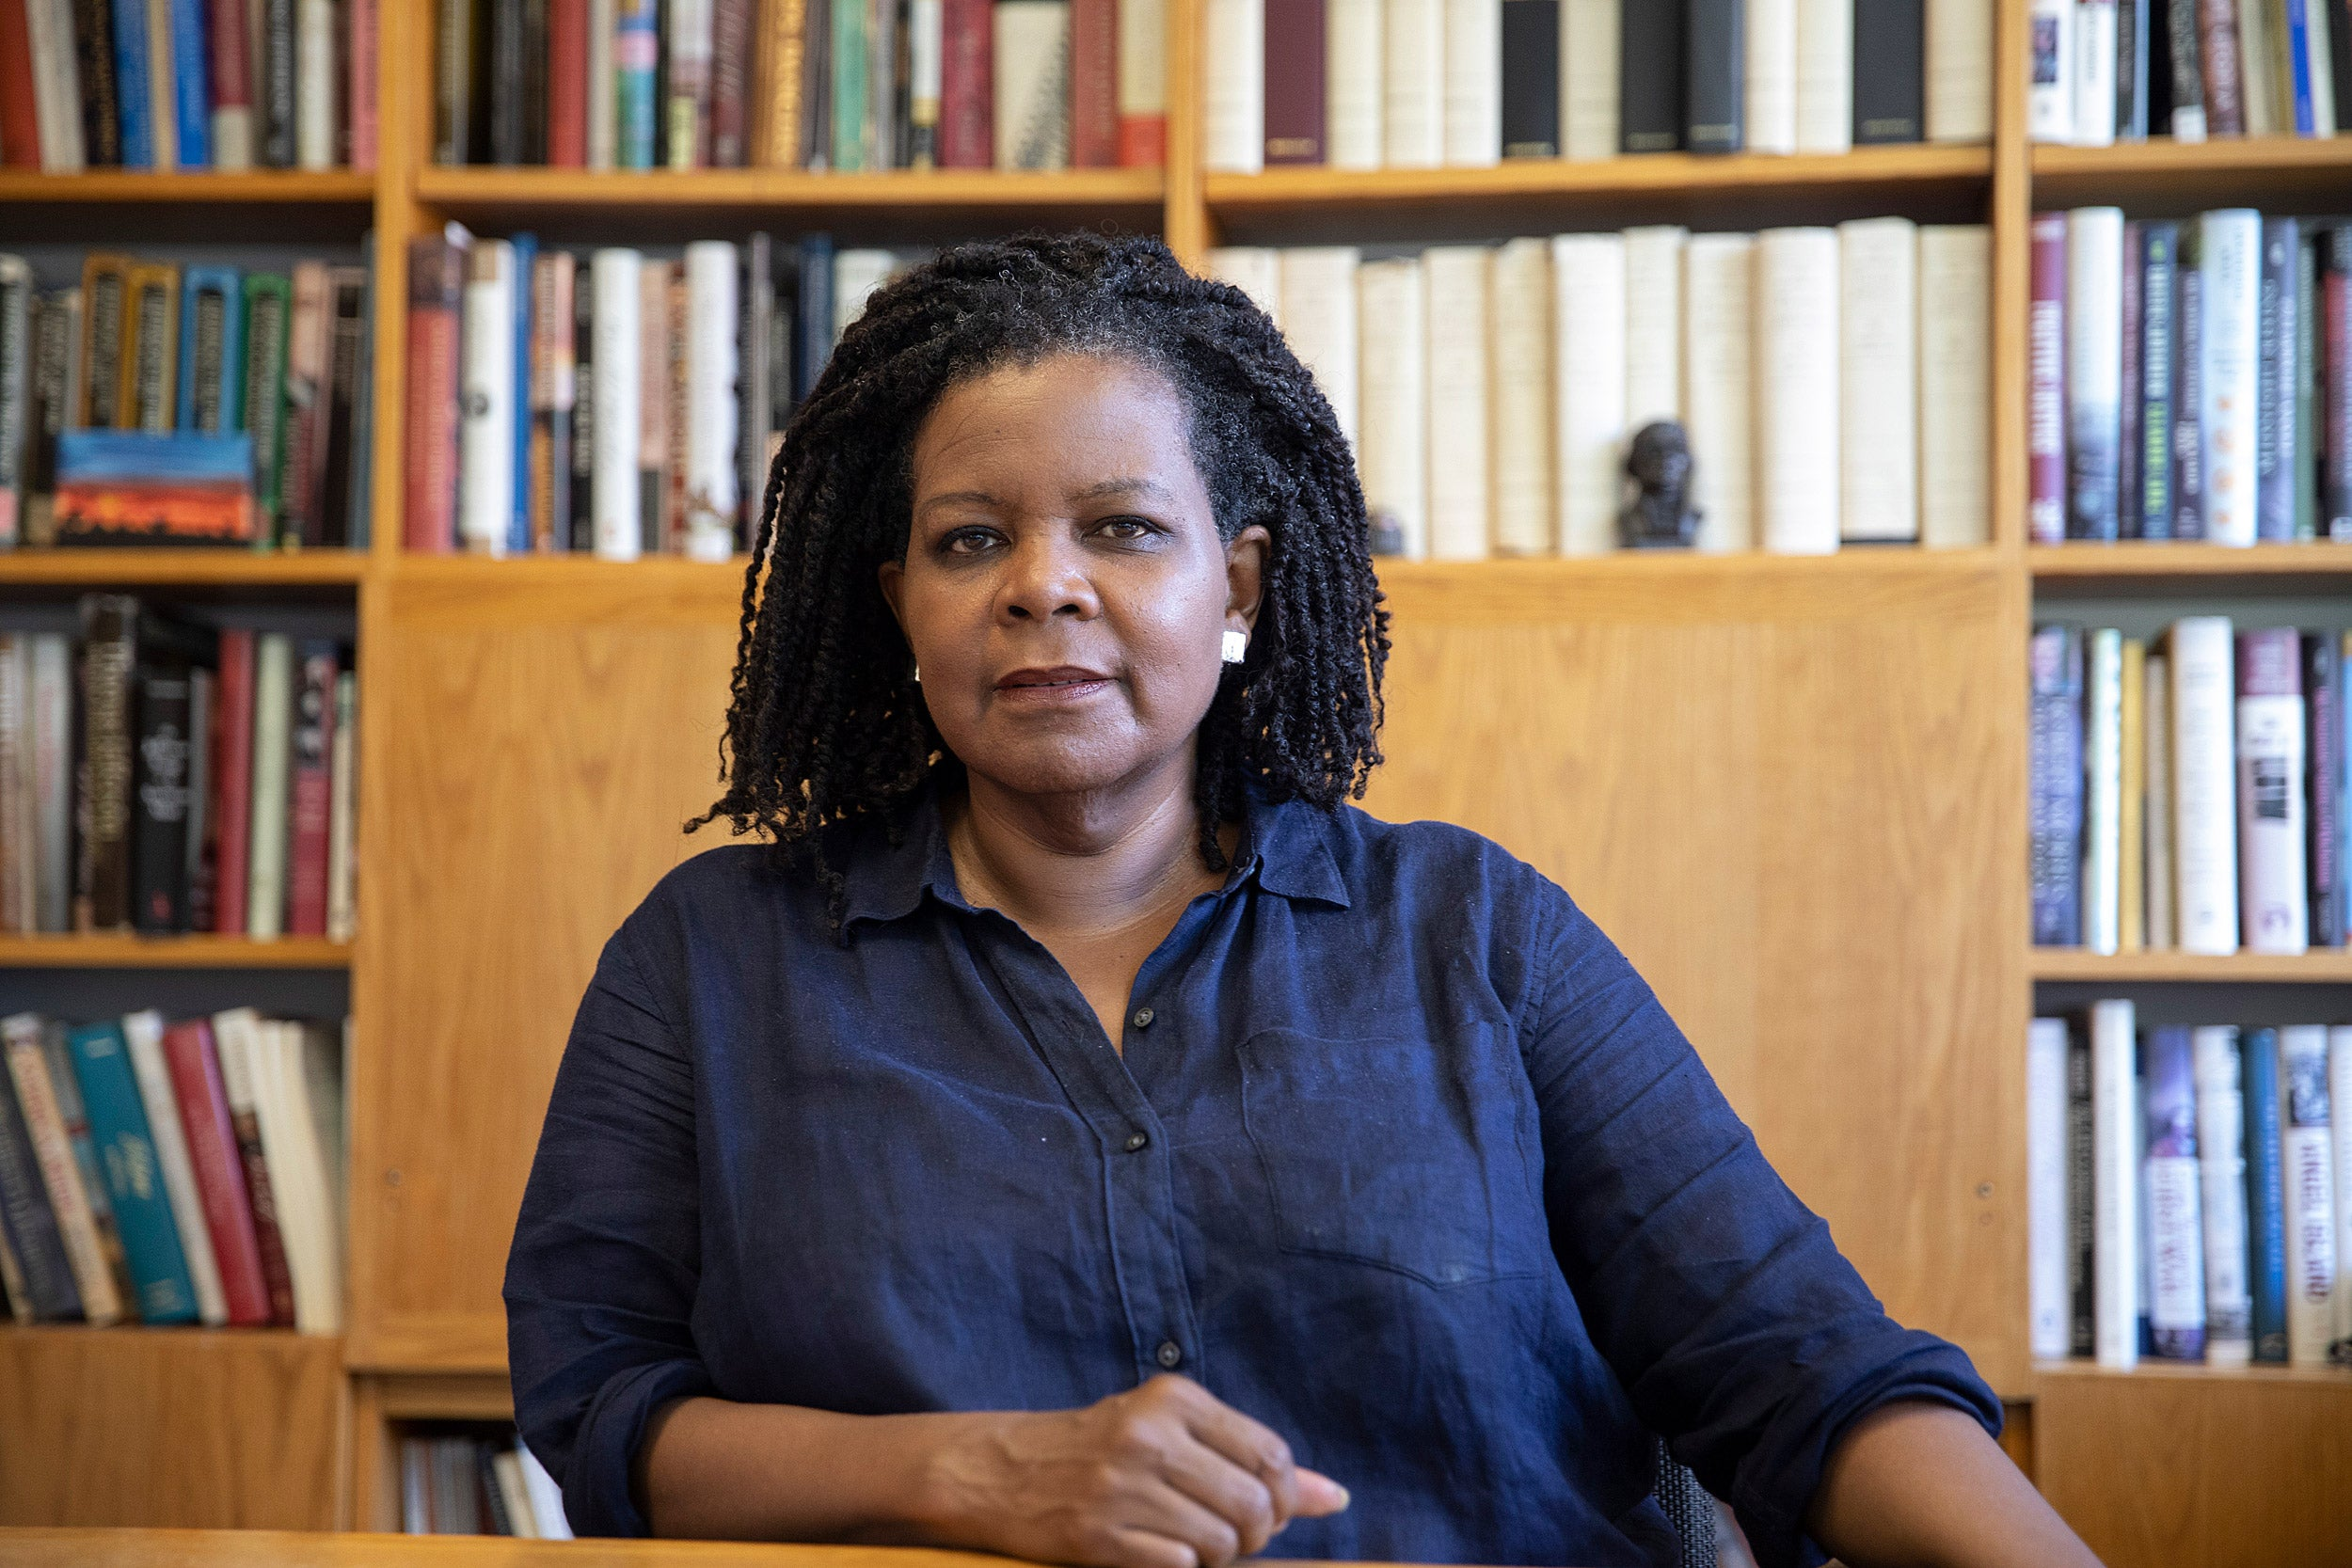 Professor Annette Gordon-Reed, chair of the review committee that is looking into the arrest of a Harvard College student last April, talks about what's likely to come from that examination.